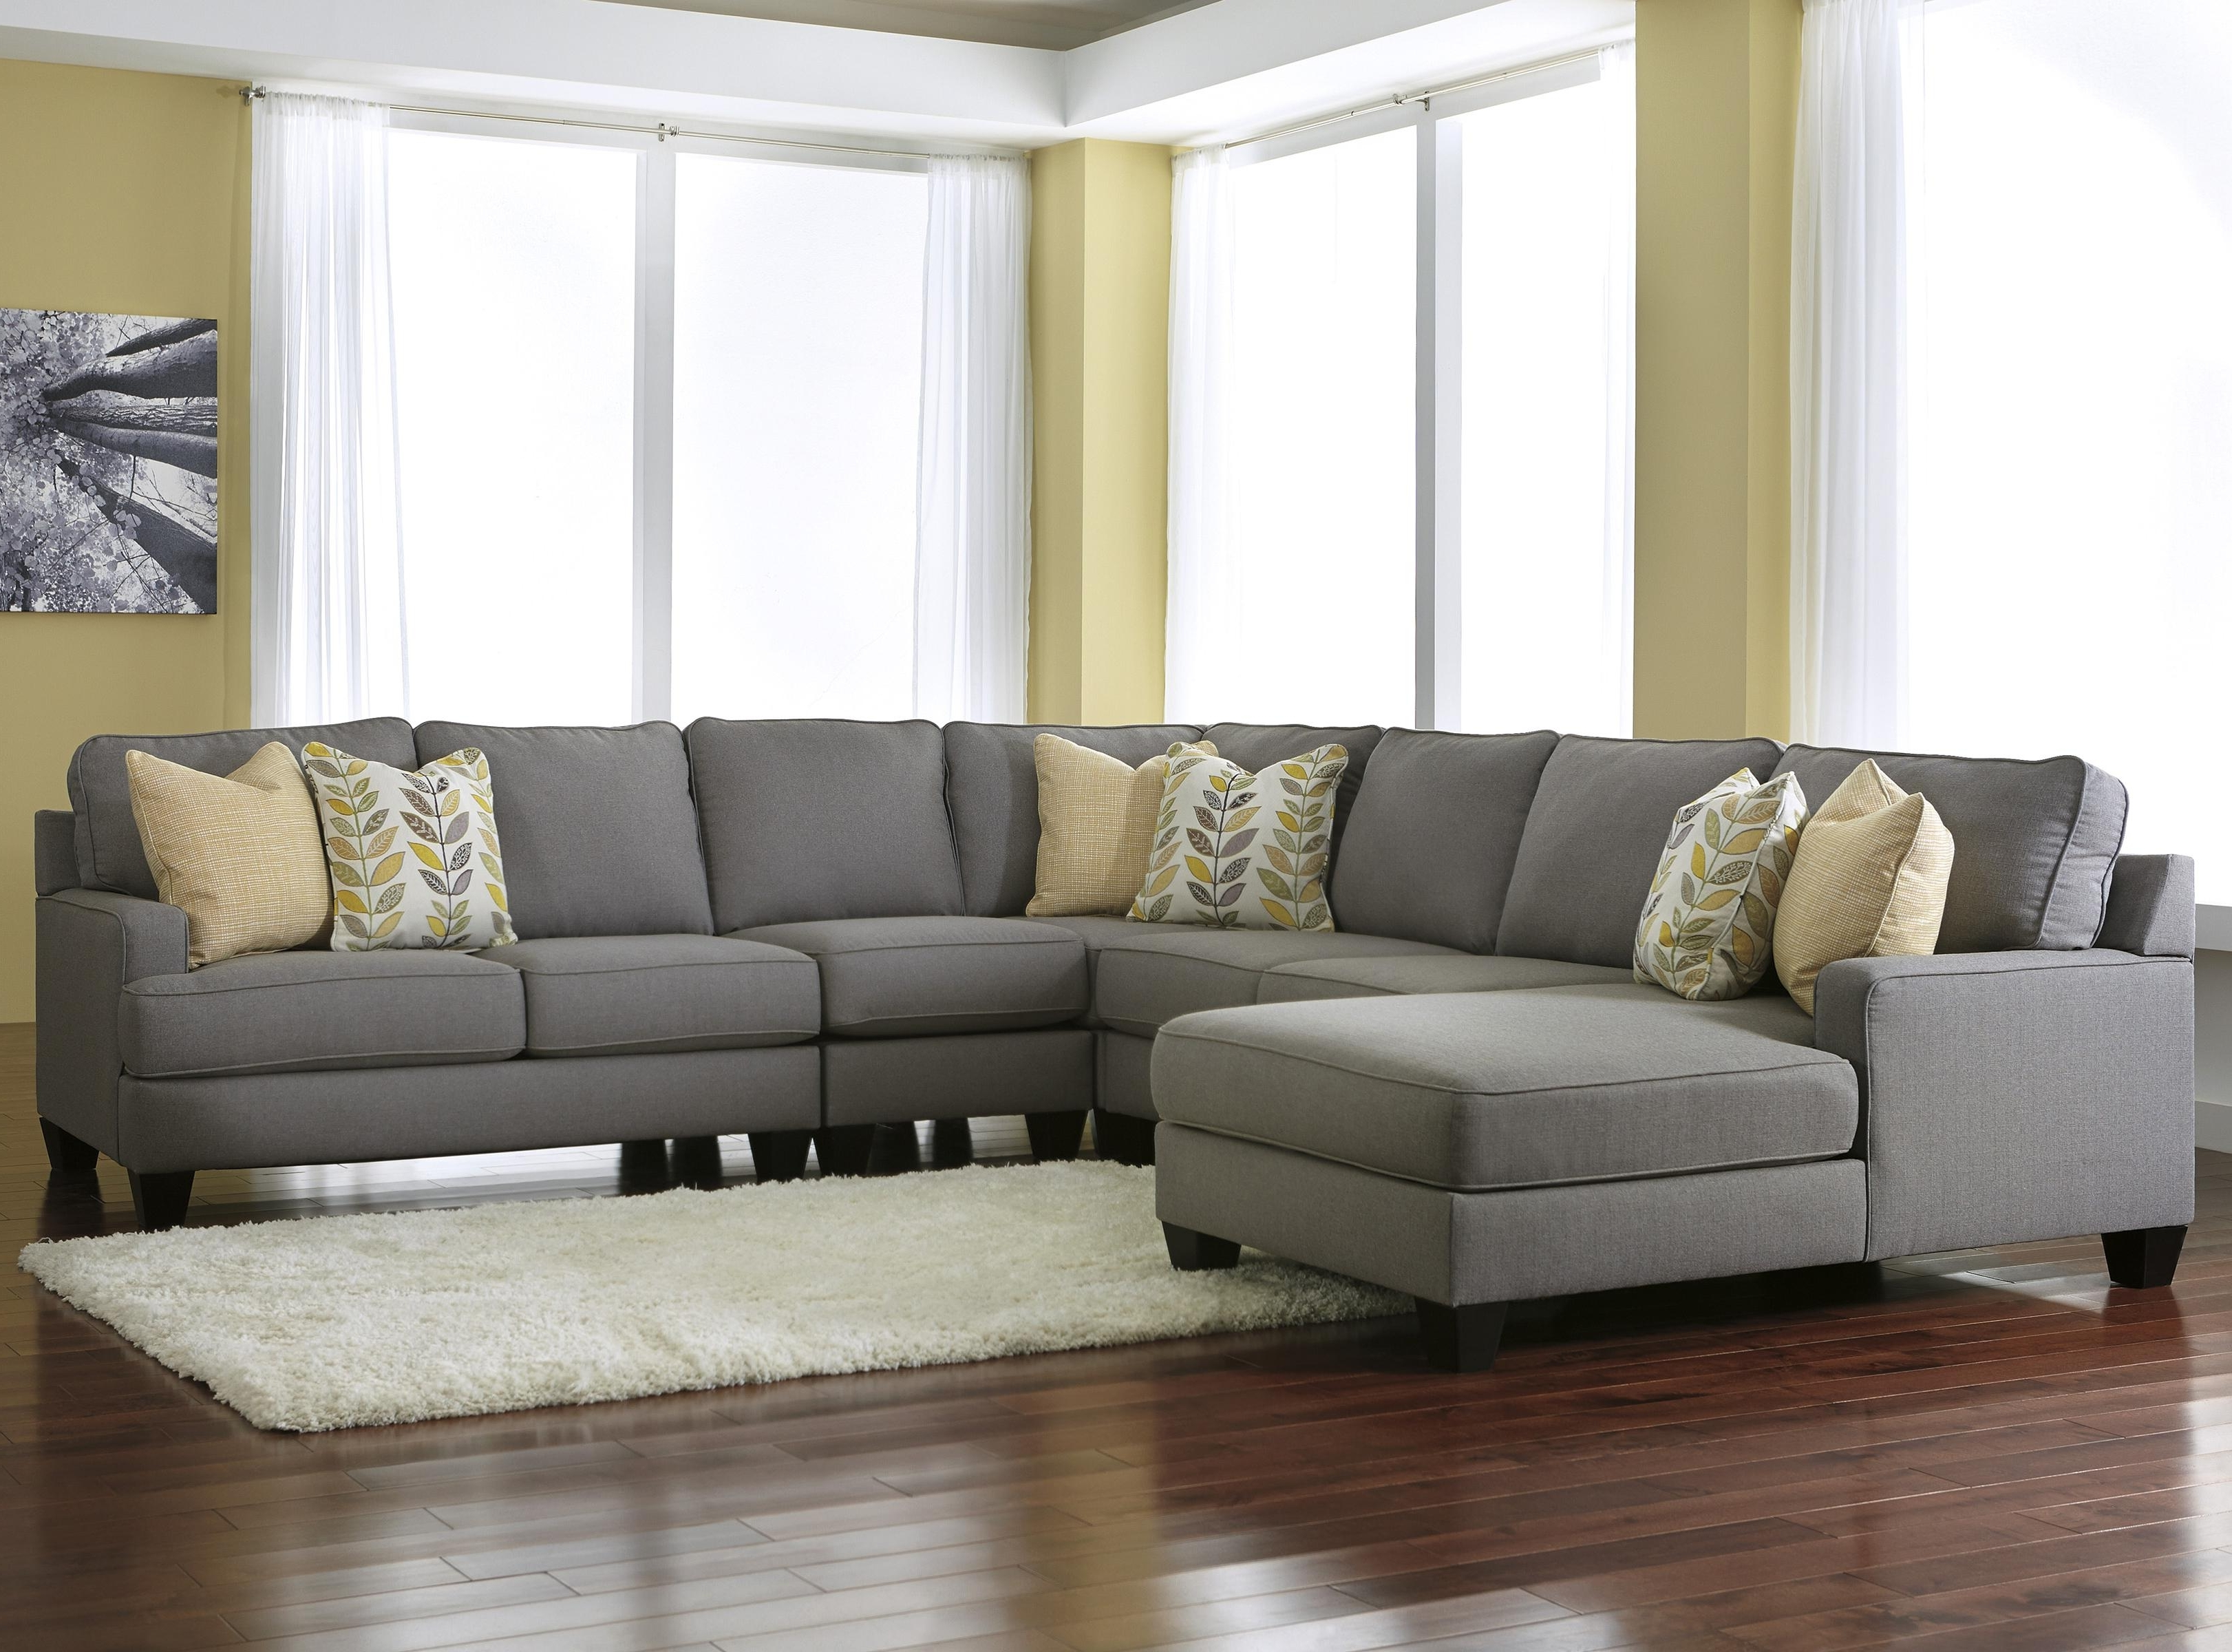 Killeen Tx Sectional Sofas in Well-known Signature Designashley Chamberly - Alloy Modern 5-Piece